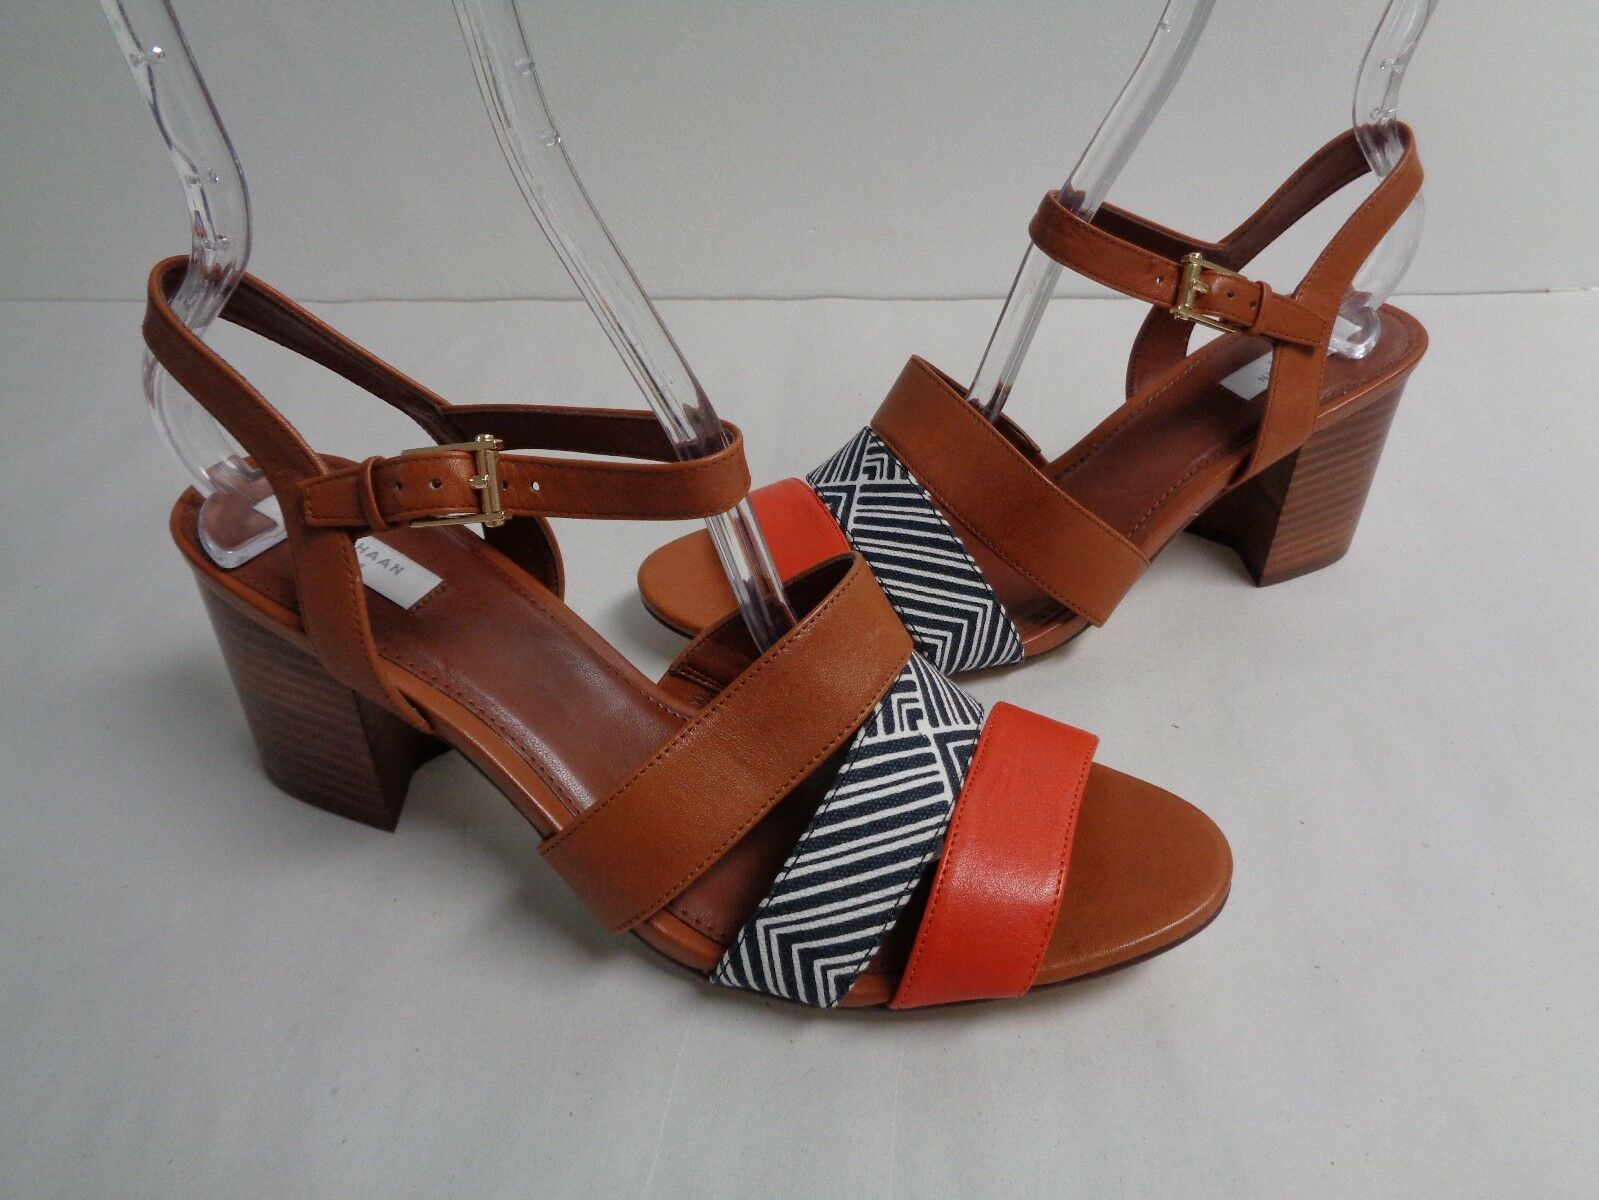 Cole Haan Size 8.5 M ANISA HIGH HIGH HIGH Brown Leather Dress Sandals New Womens shoes 0d16e5